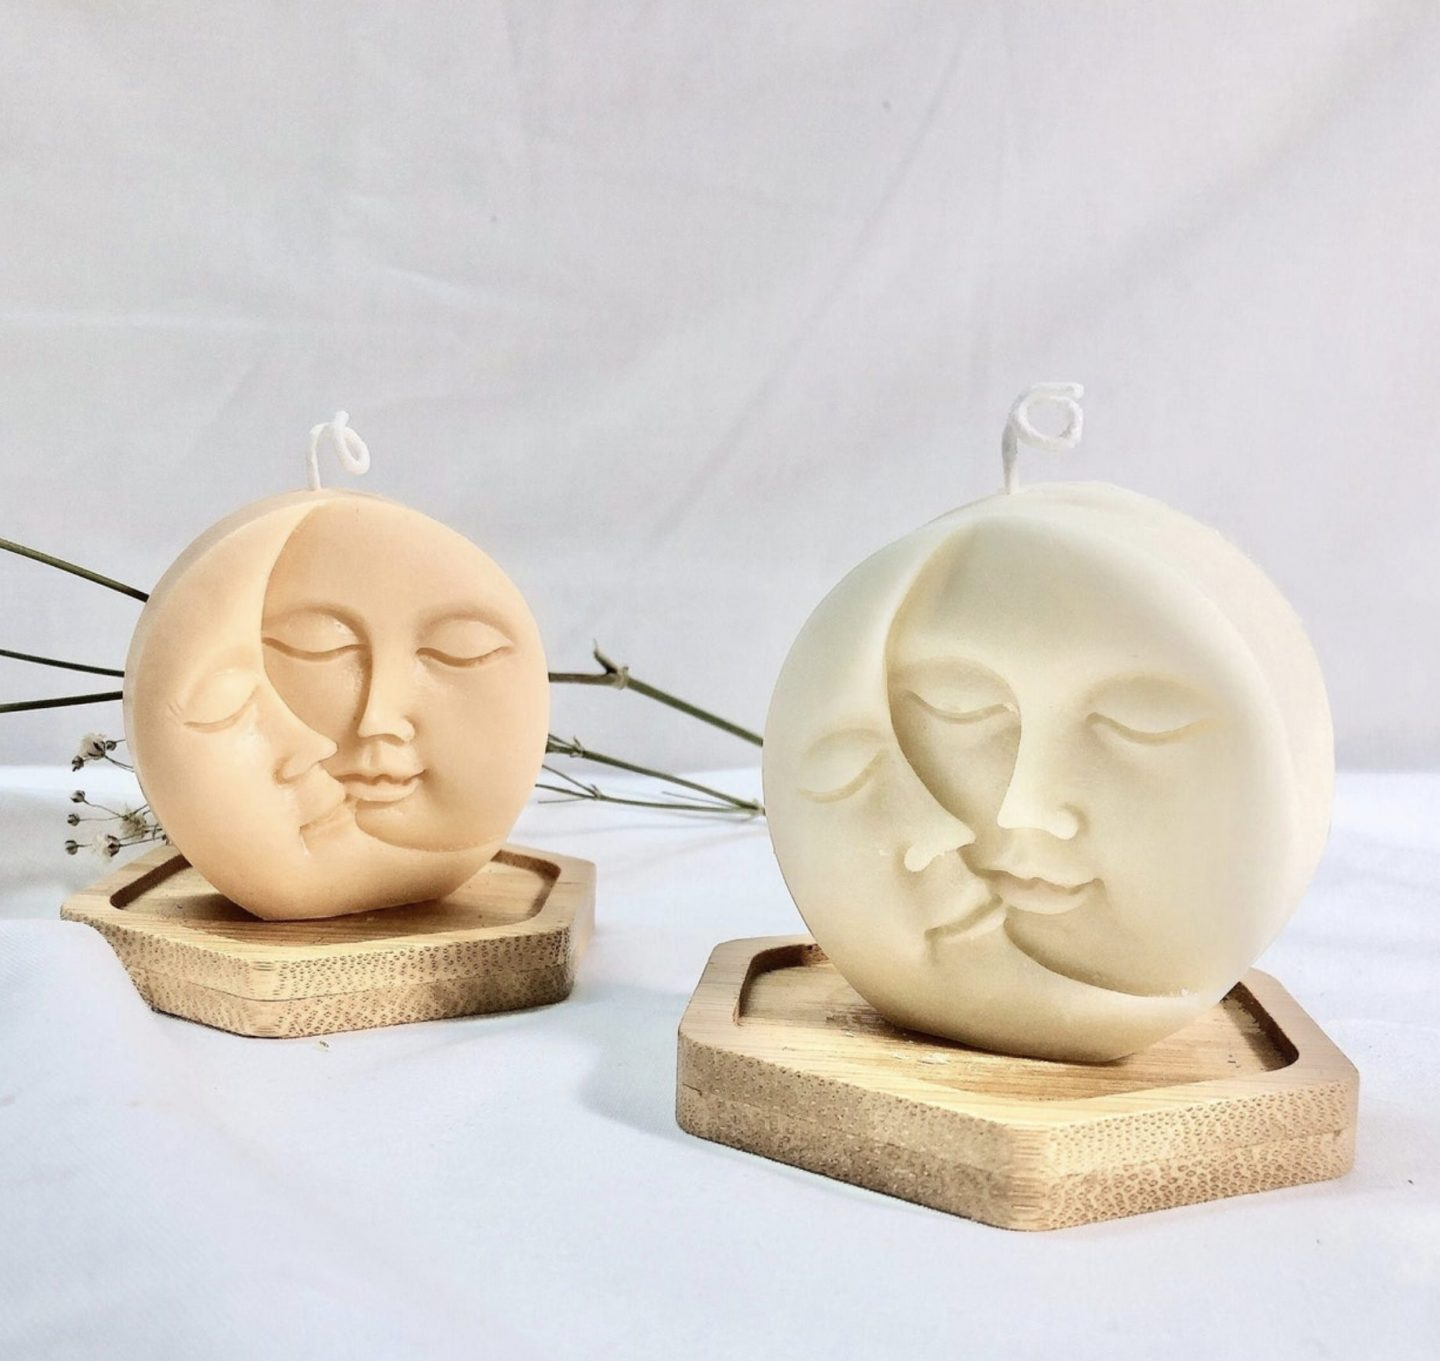 Trendy sculptural sun and moon candles